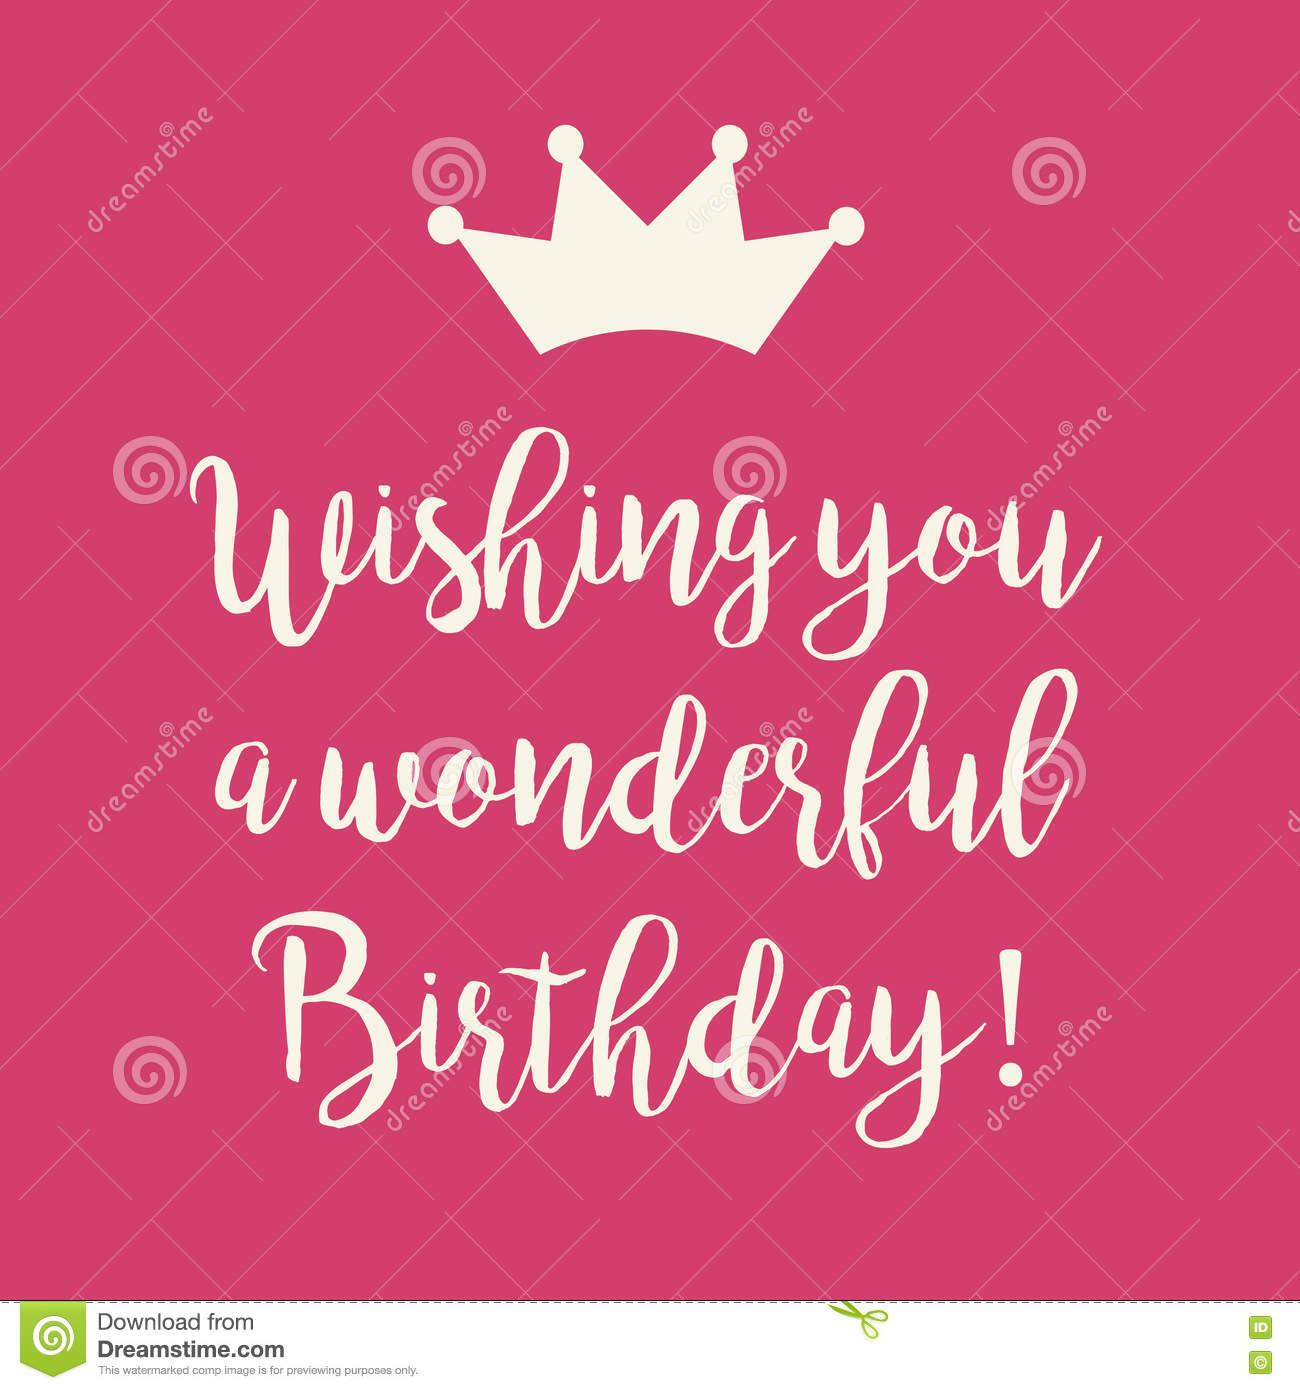 Cute Happy Birthday Card With A Text And Princess Crown On Pink Background